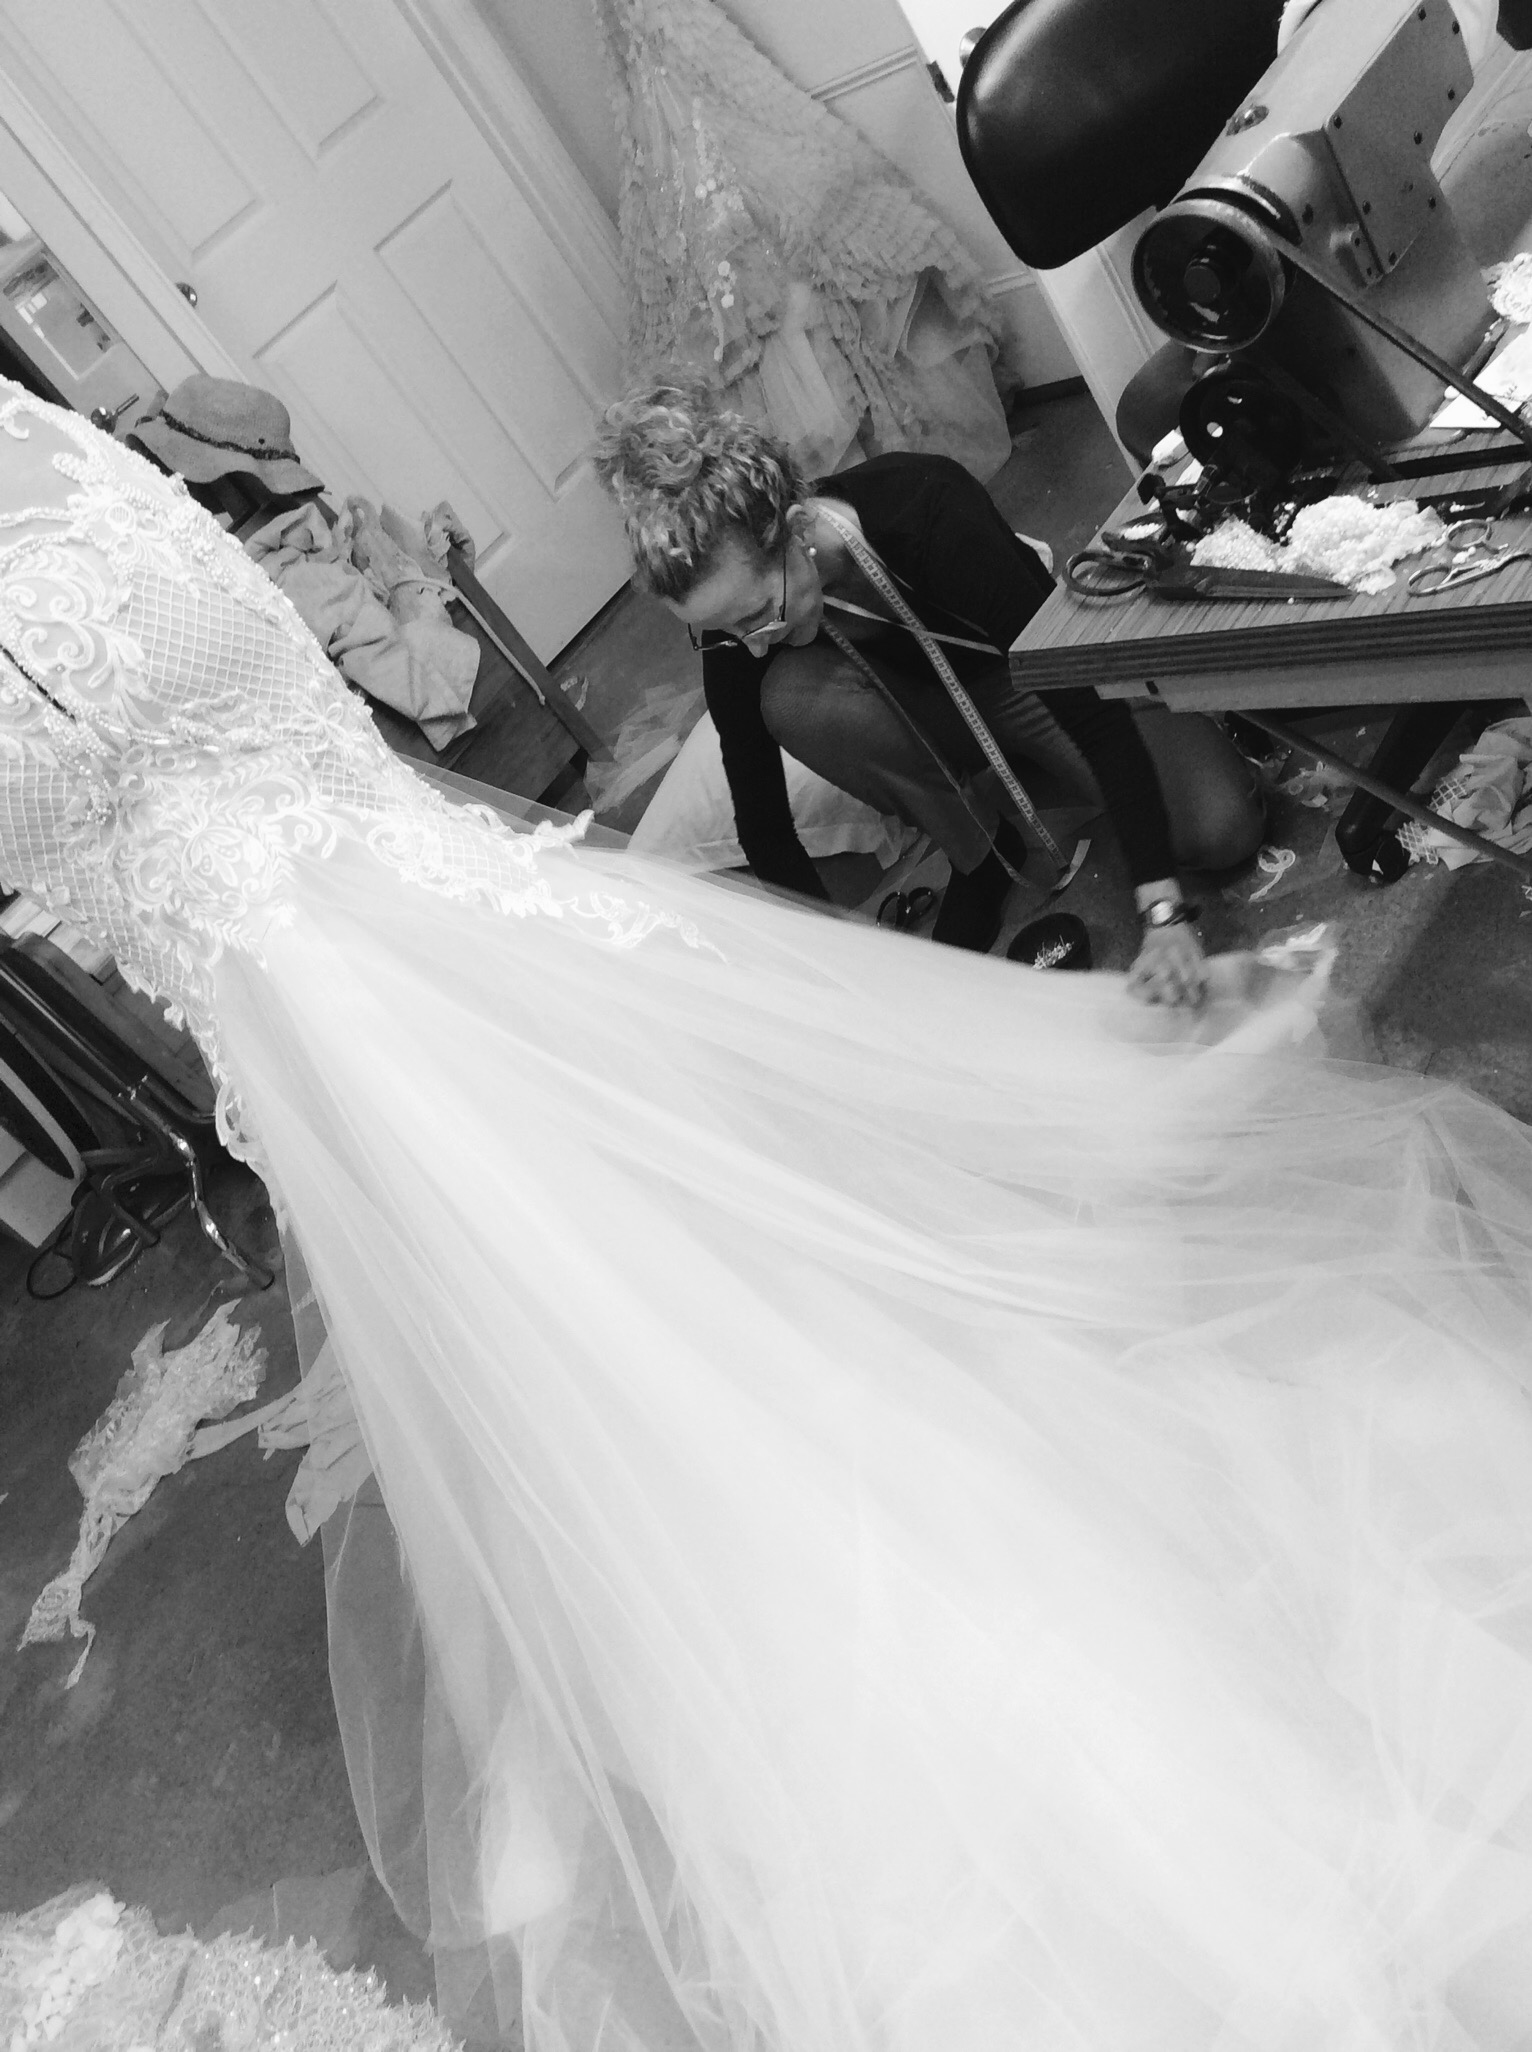 MXM Couture Wedding Dress Designer Sewing in Studio Yesterday Creative Letterpress Blog Post